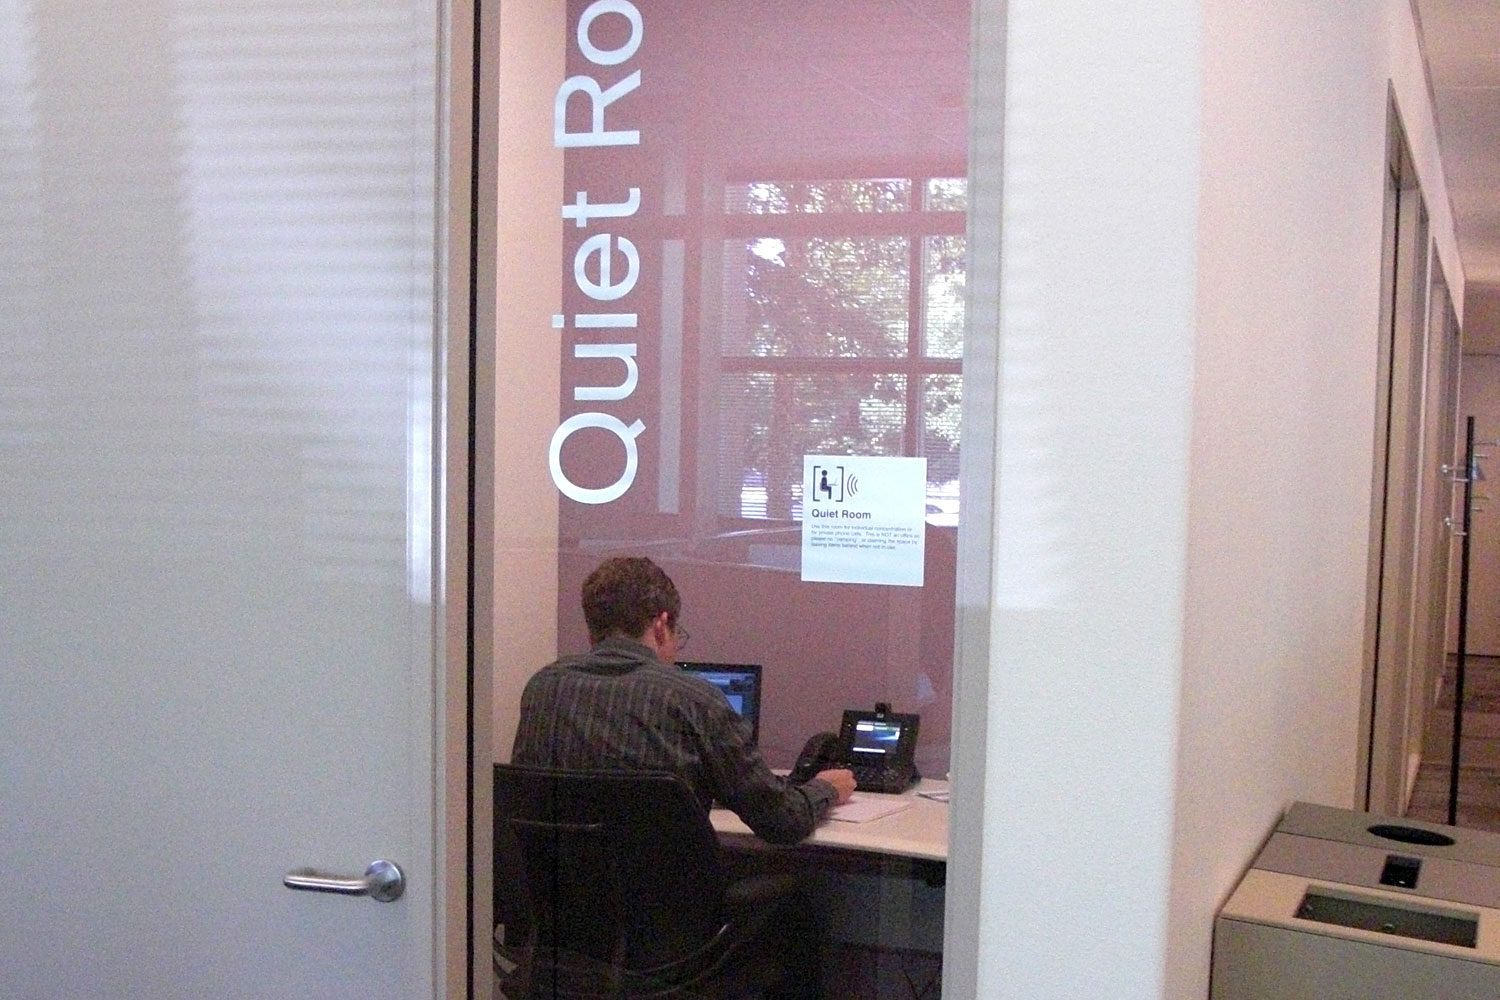 Quiet Room : Cisco Connected Workplace